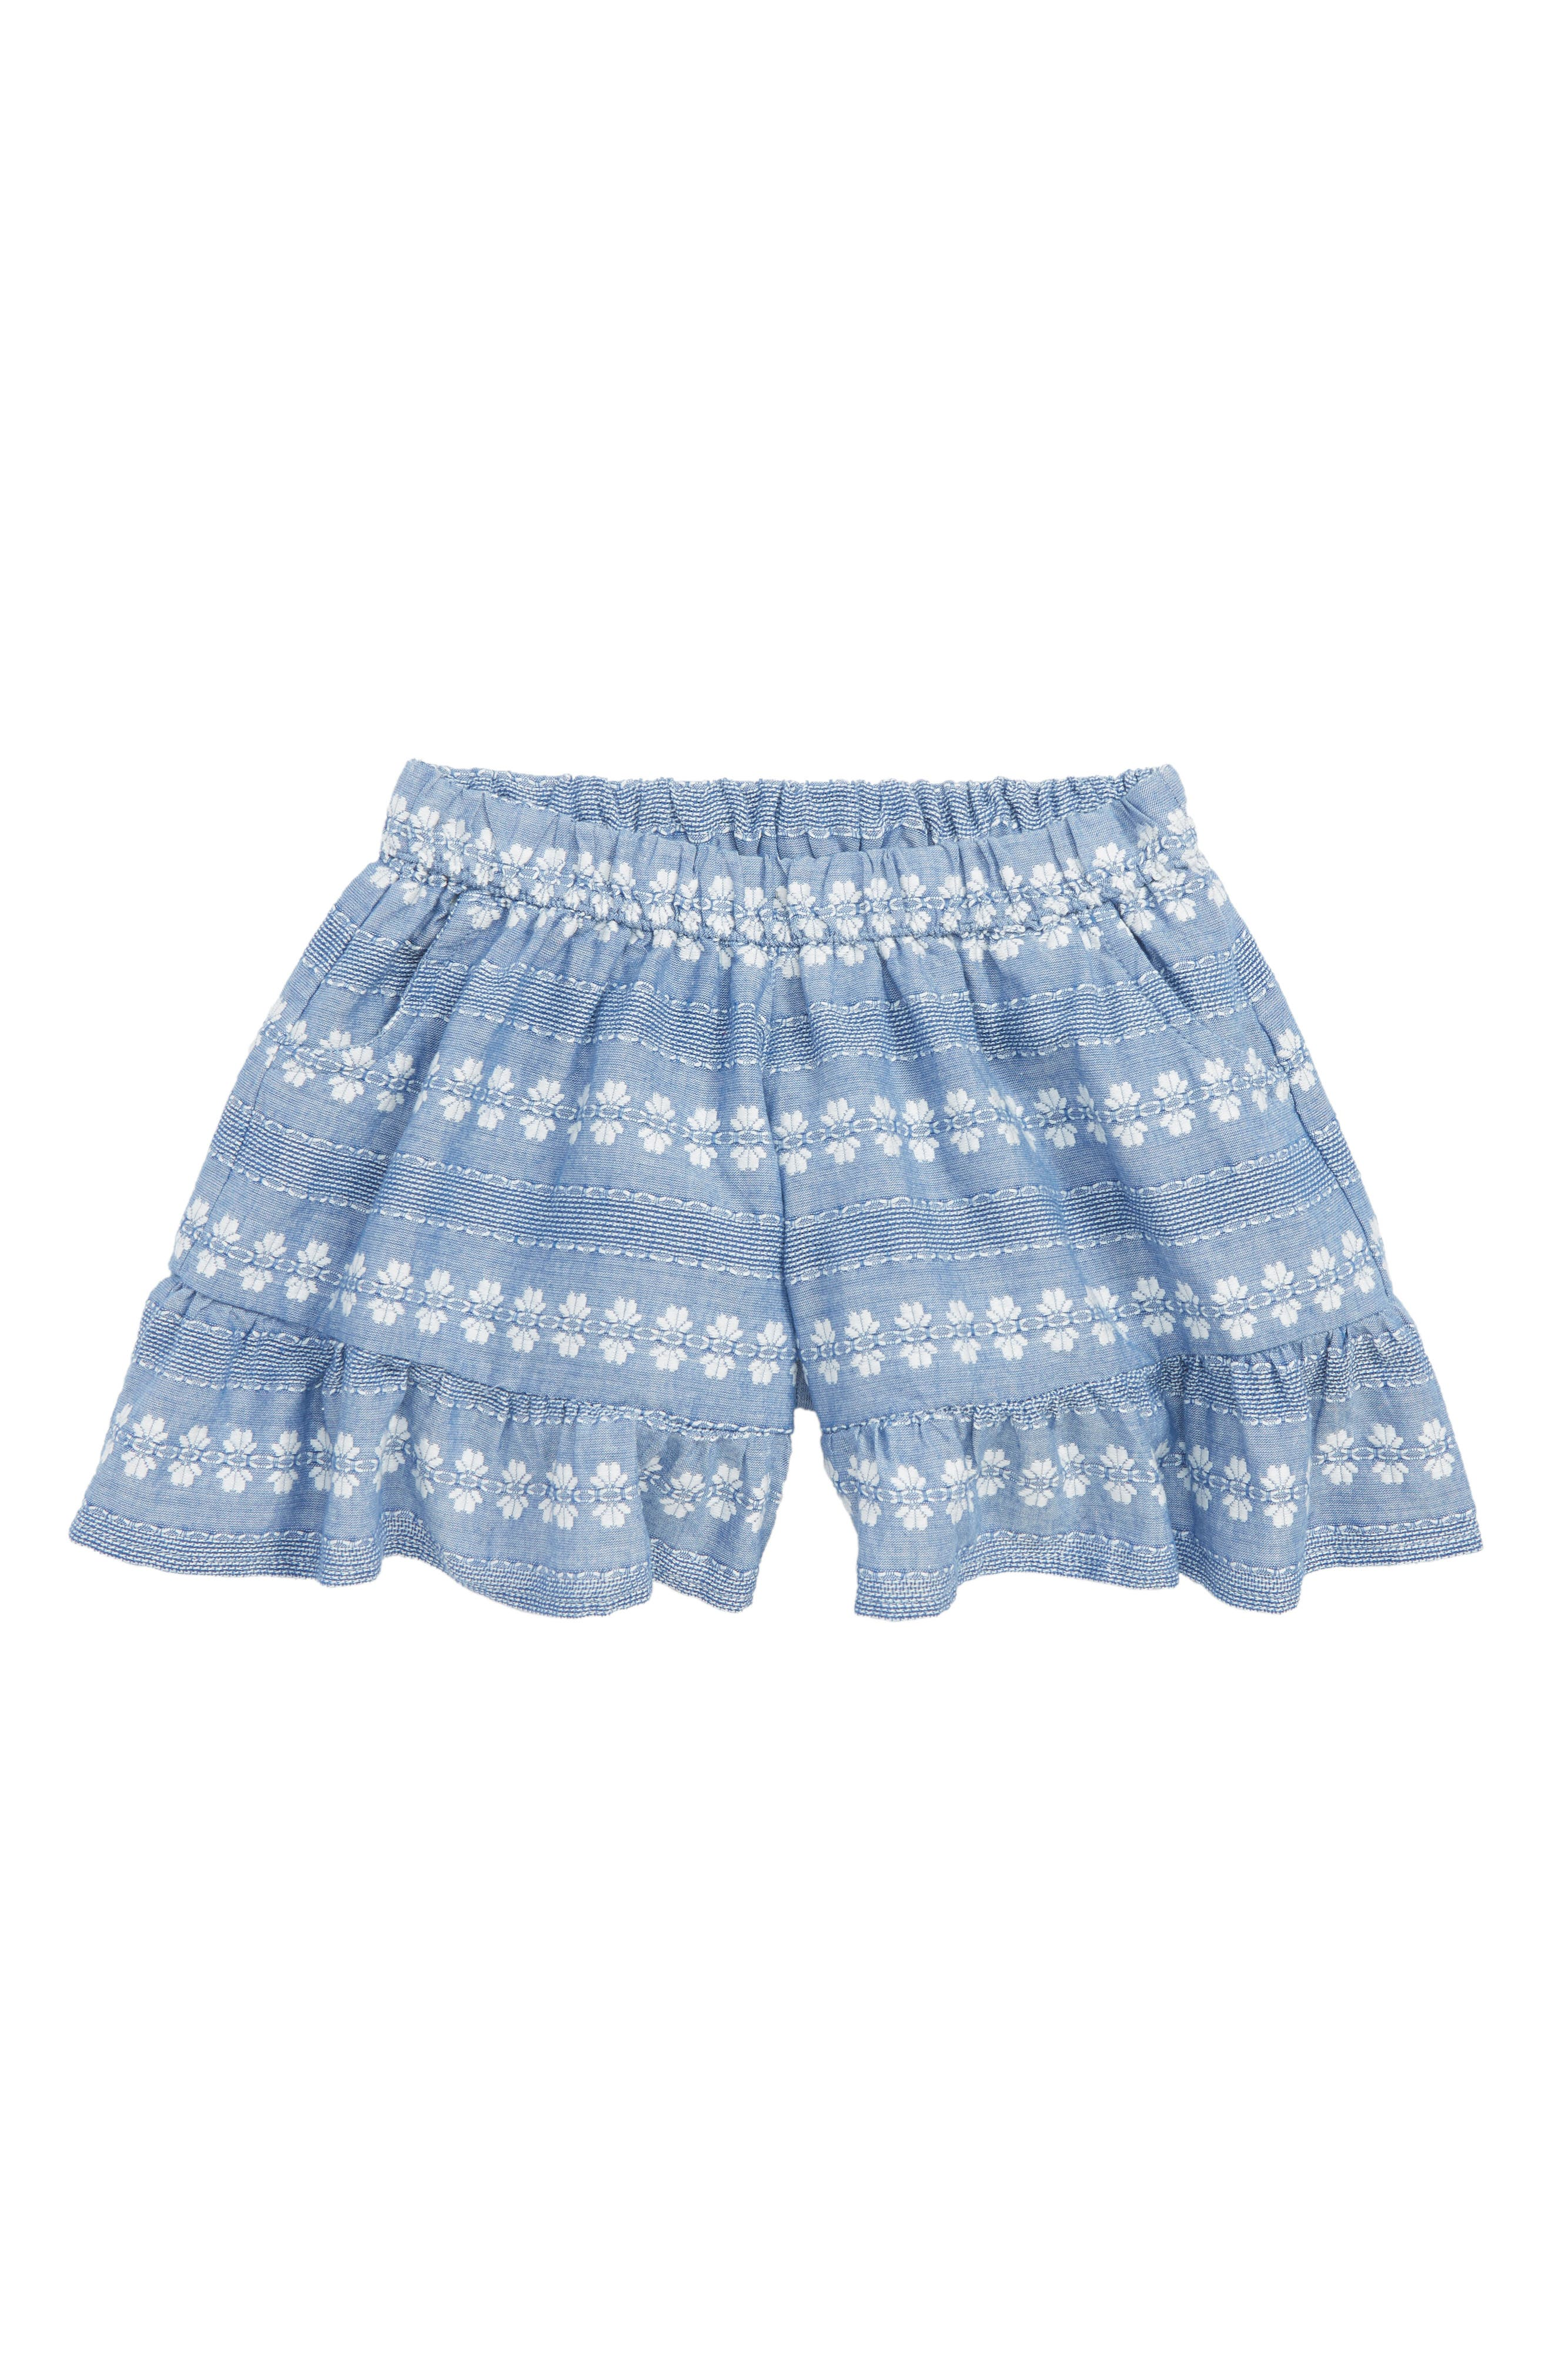 Madeline Embroidered Shorts,                         Main,                         color, 450